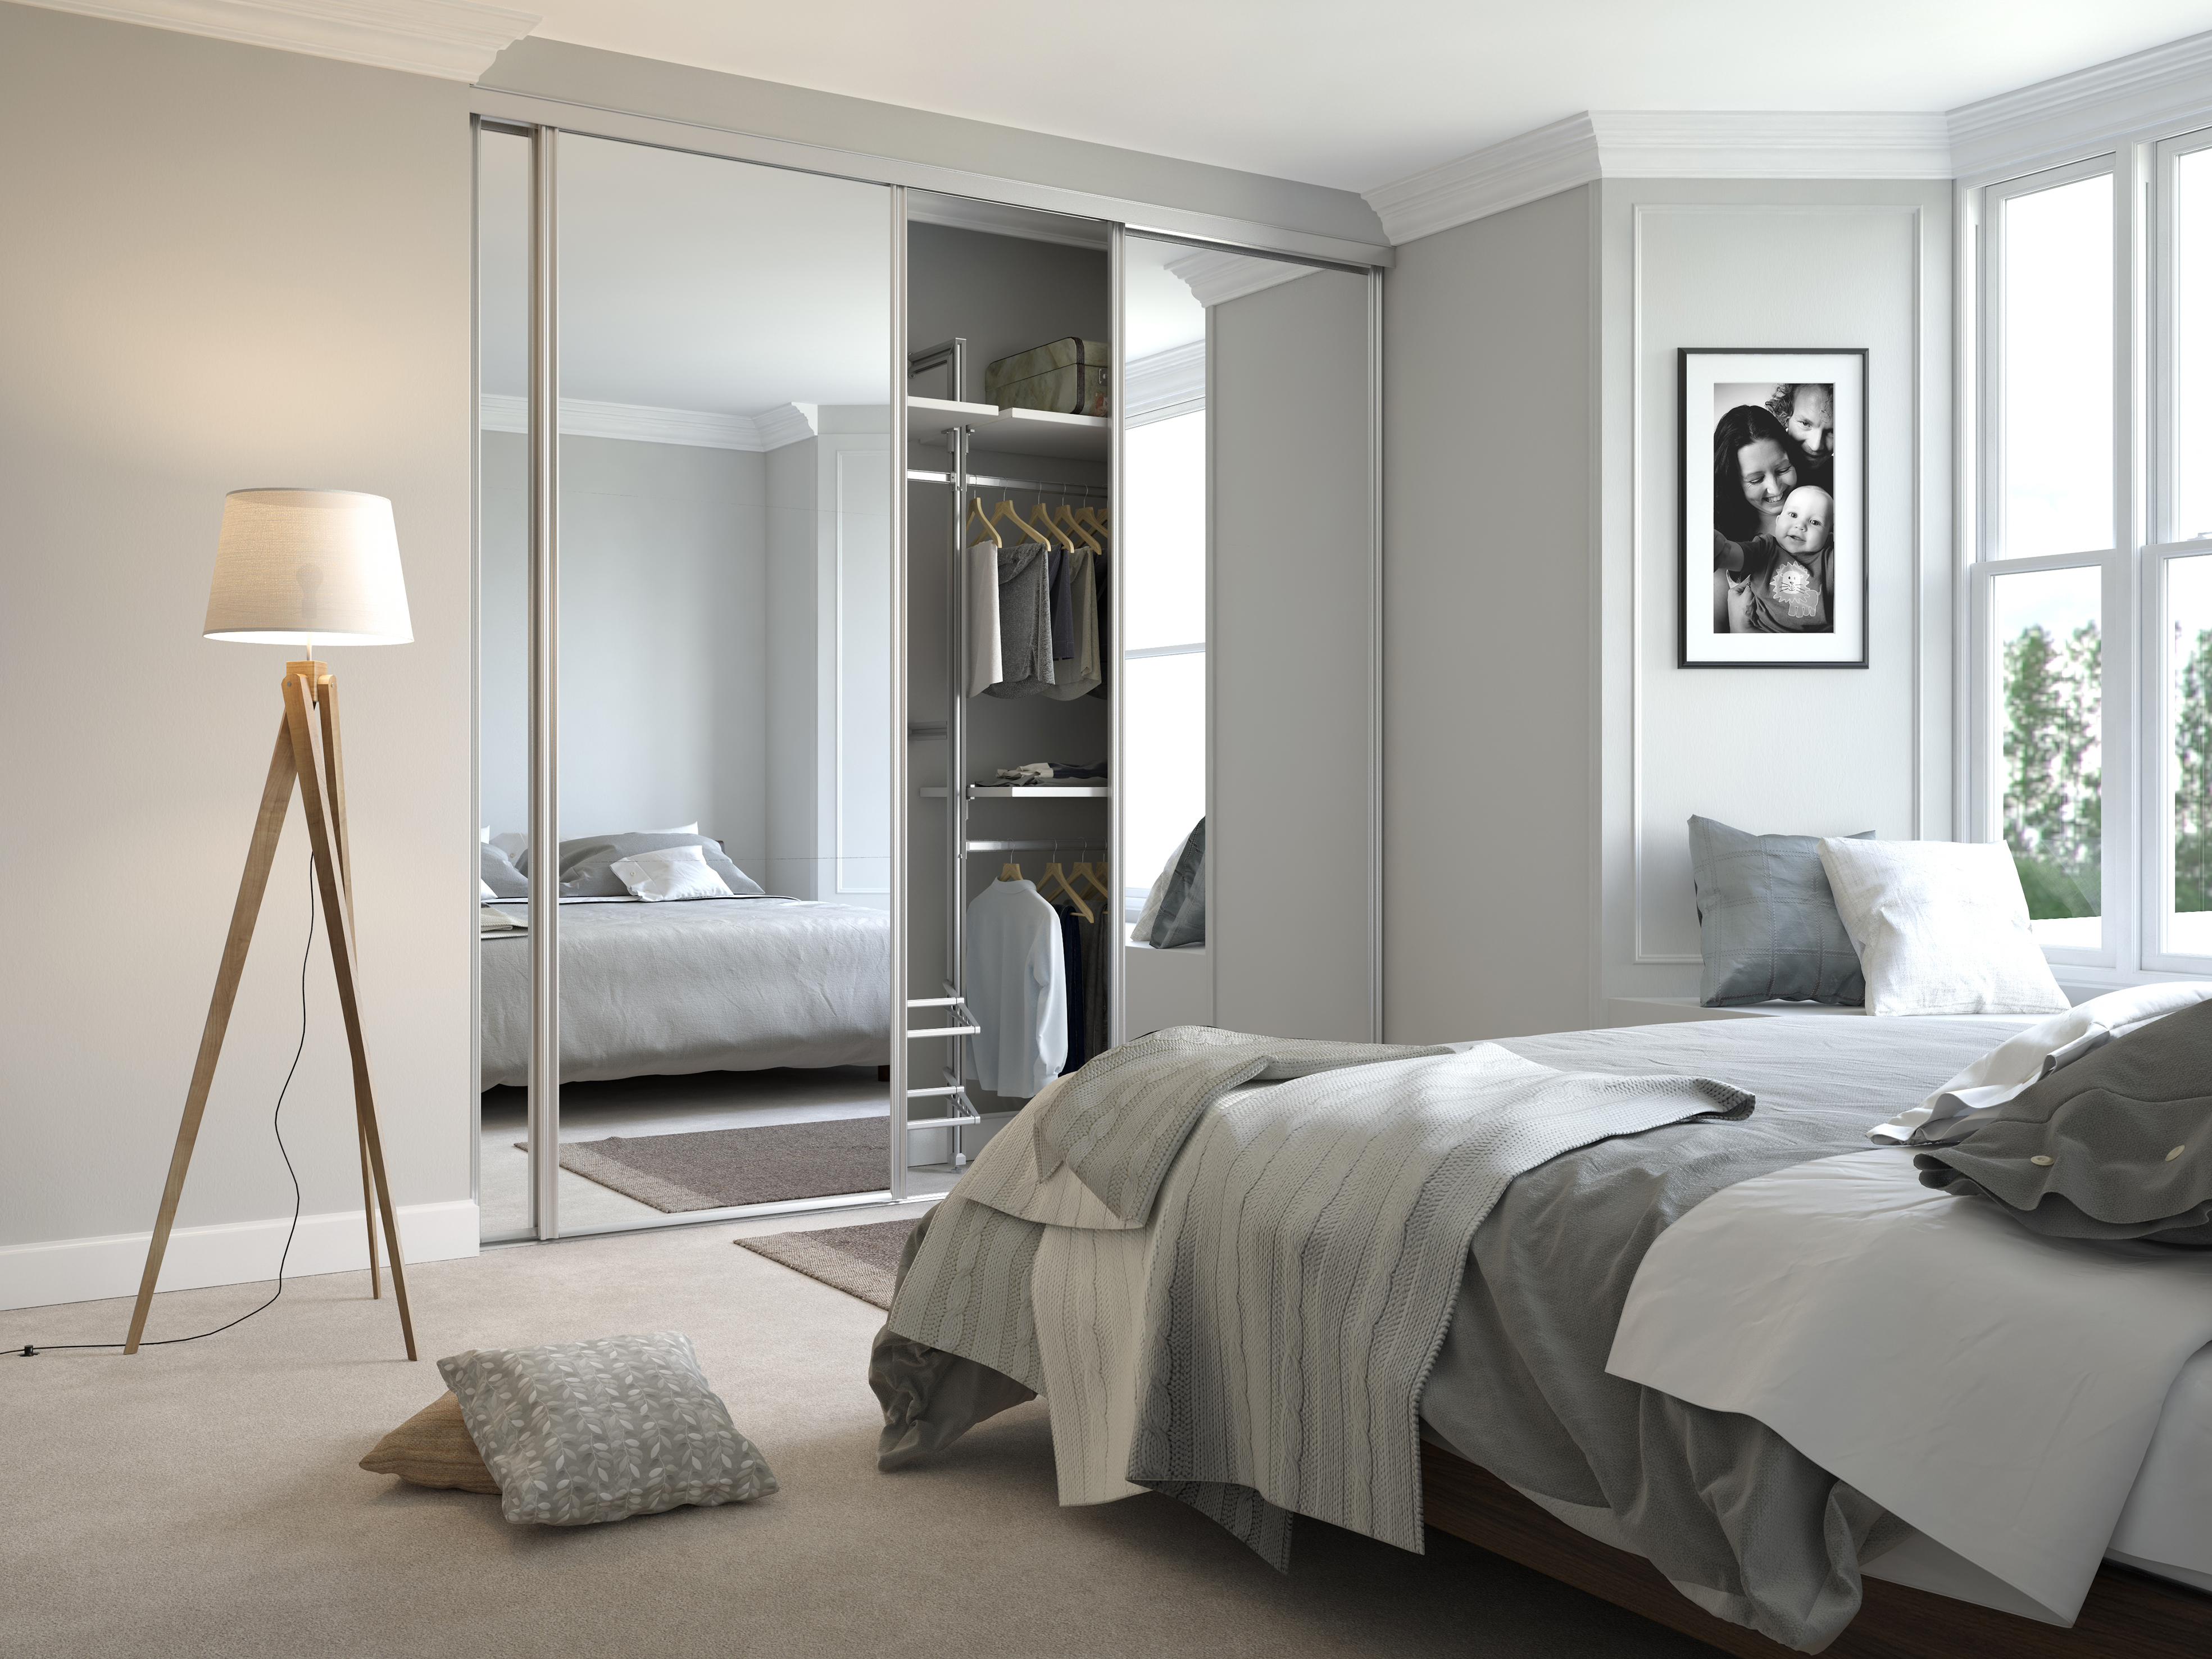 You Want To Ensure The Furniture Will Fit Comfortably, Whilst Avoiding  Overcrowding The Room. And This Is Especially True For Small Wardrobes In  Bedrooms.